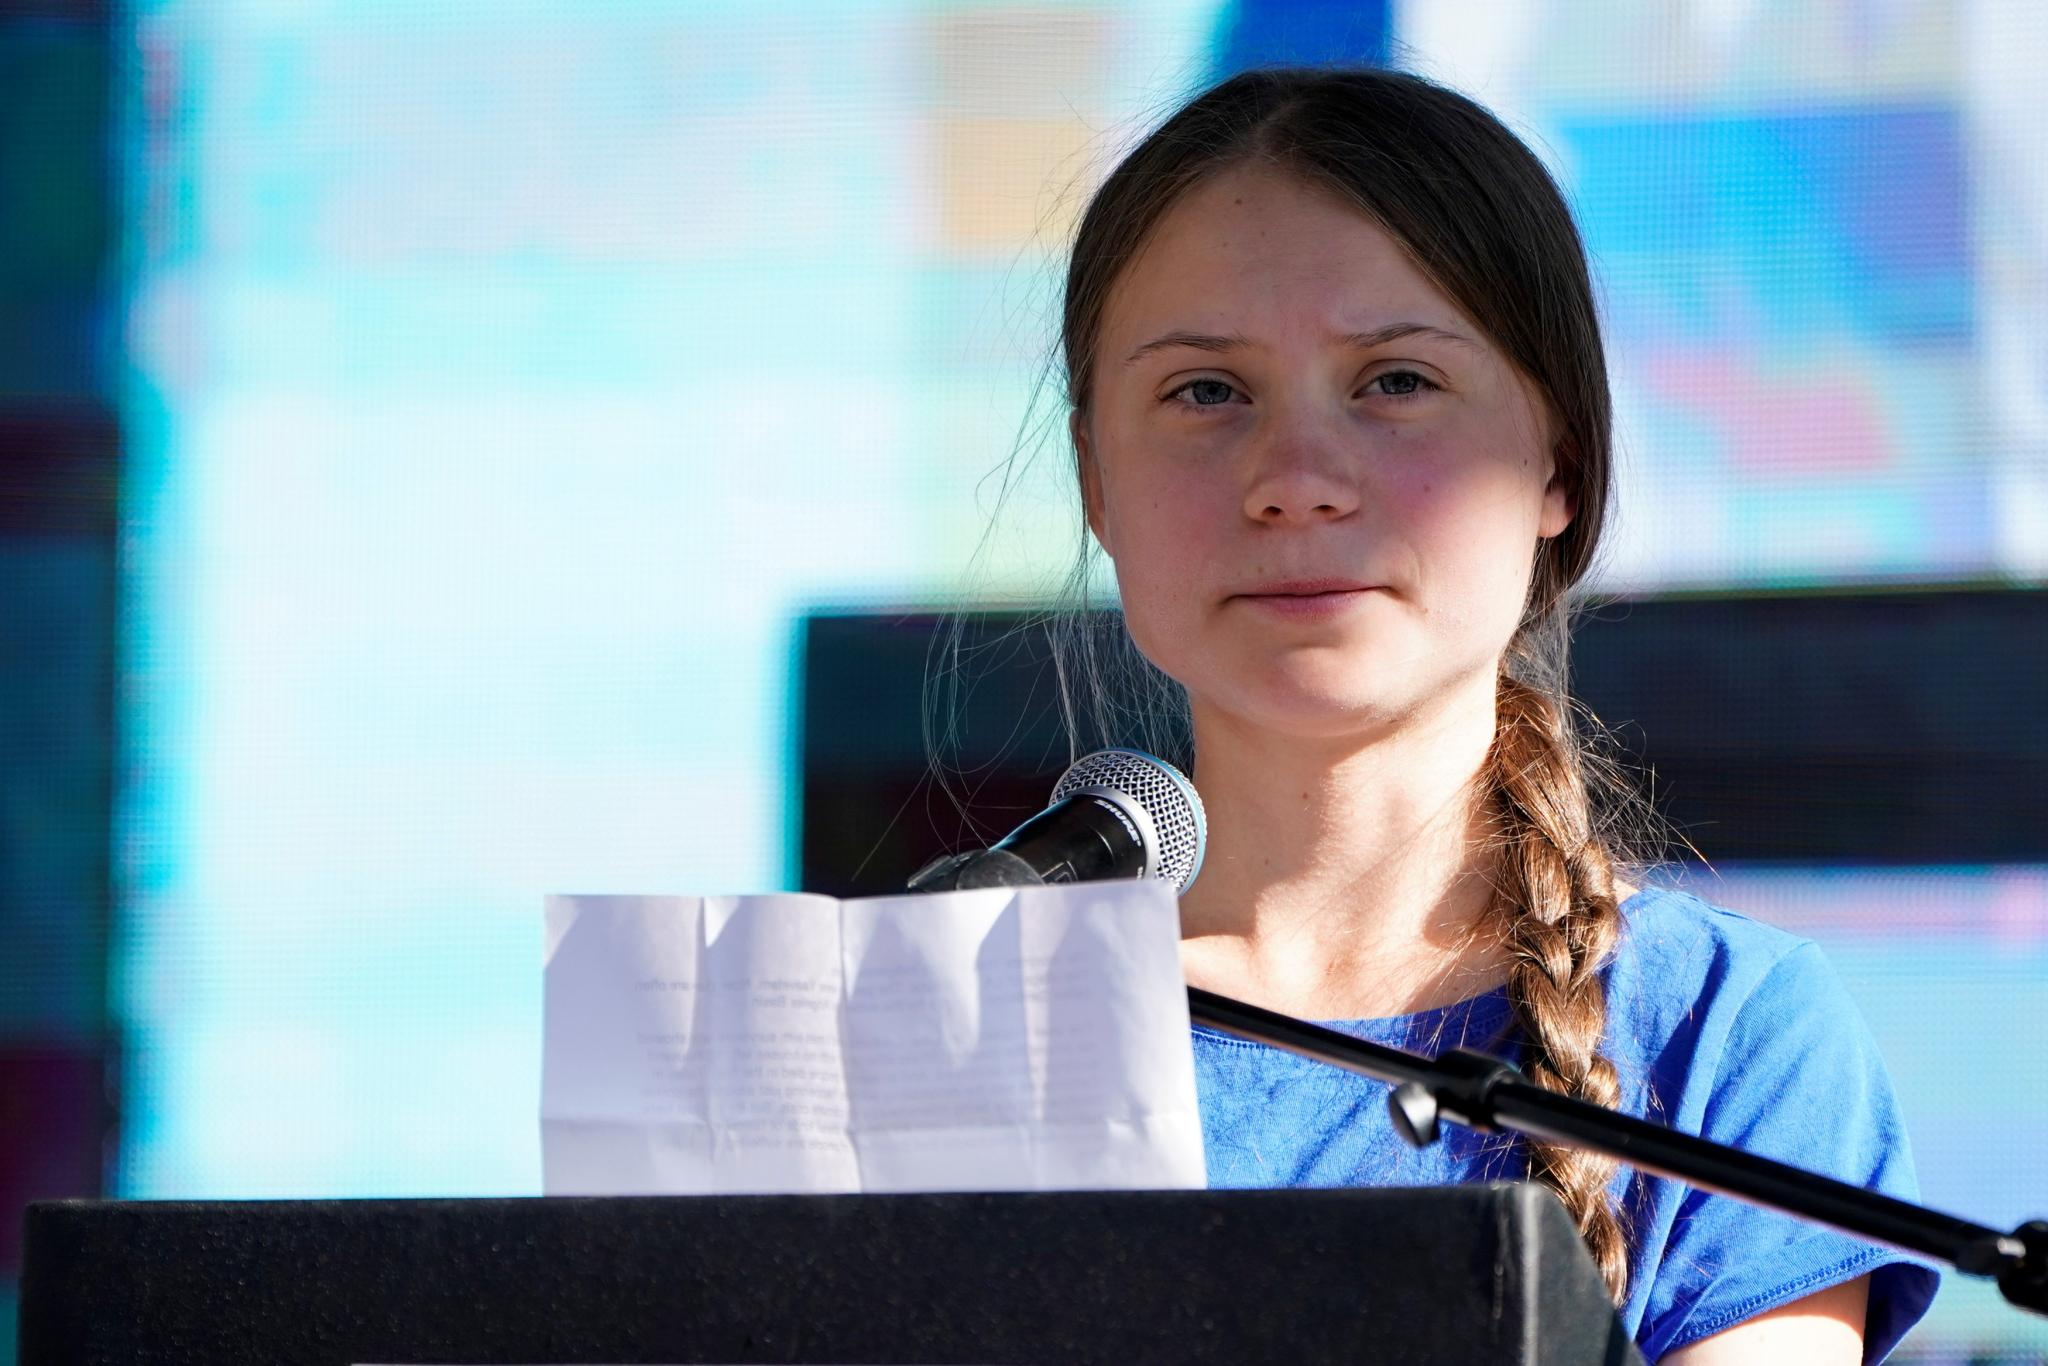 Greta Thunberg says voyage to US 'energized' her climate fight